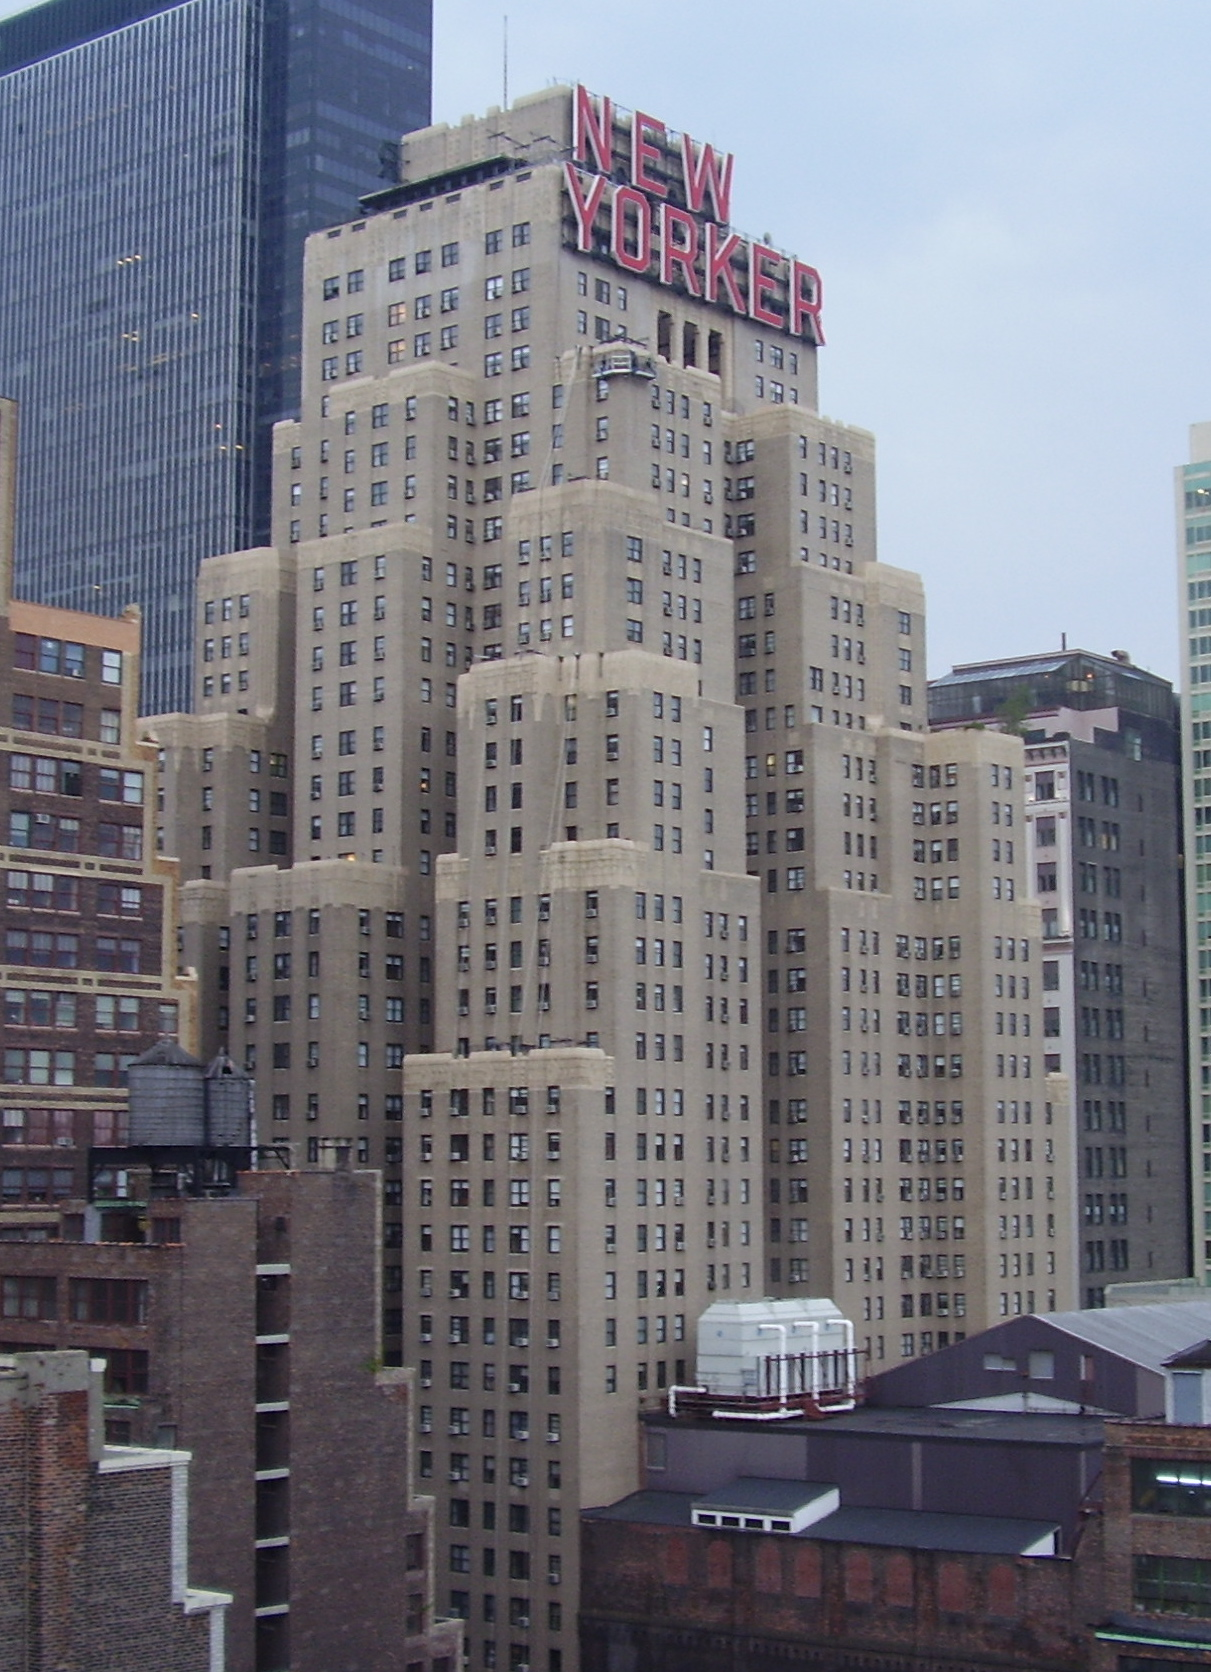 Wyndham new yorker hotel wikiwand for The wyndham